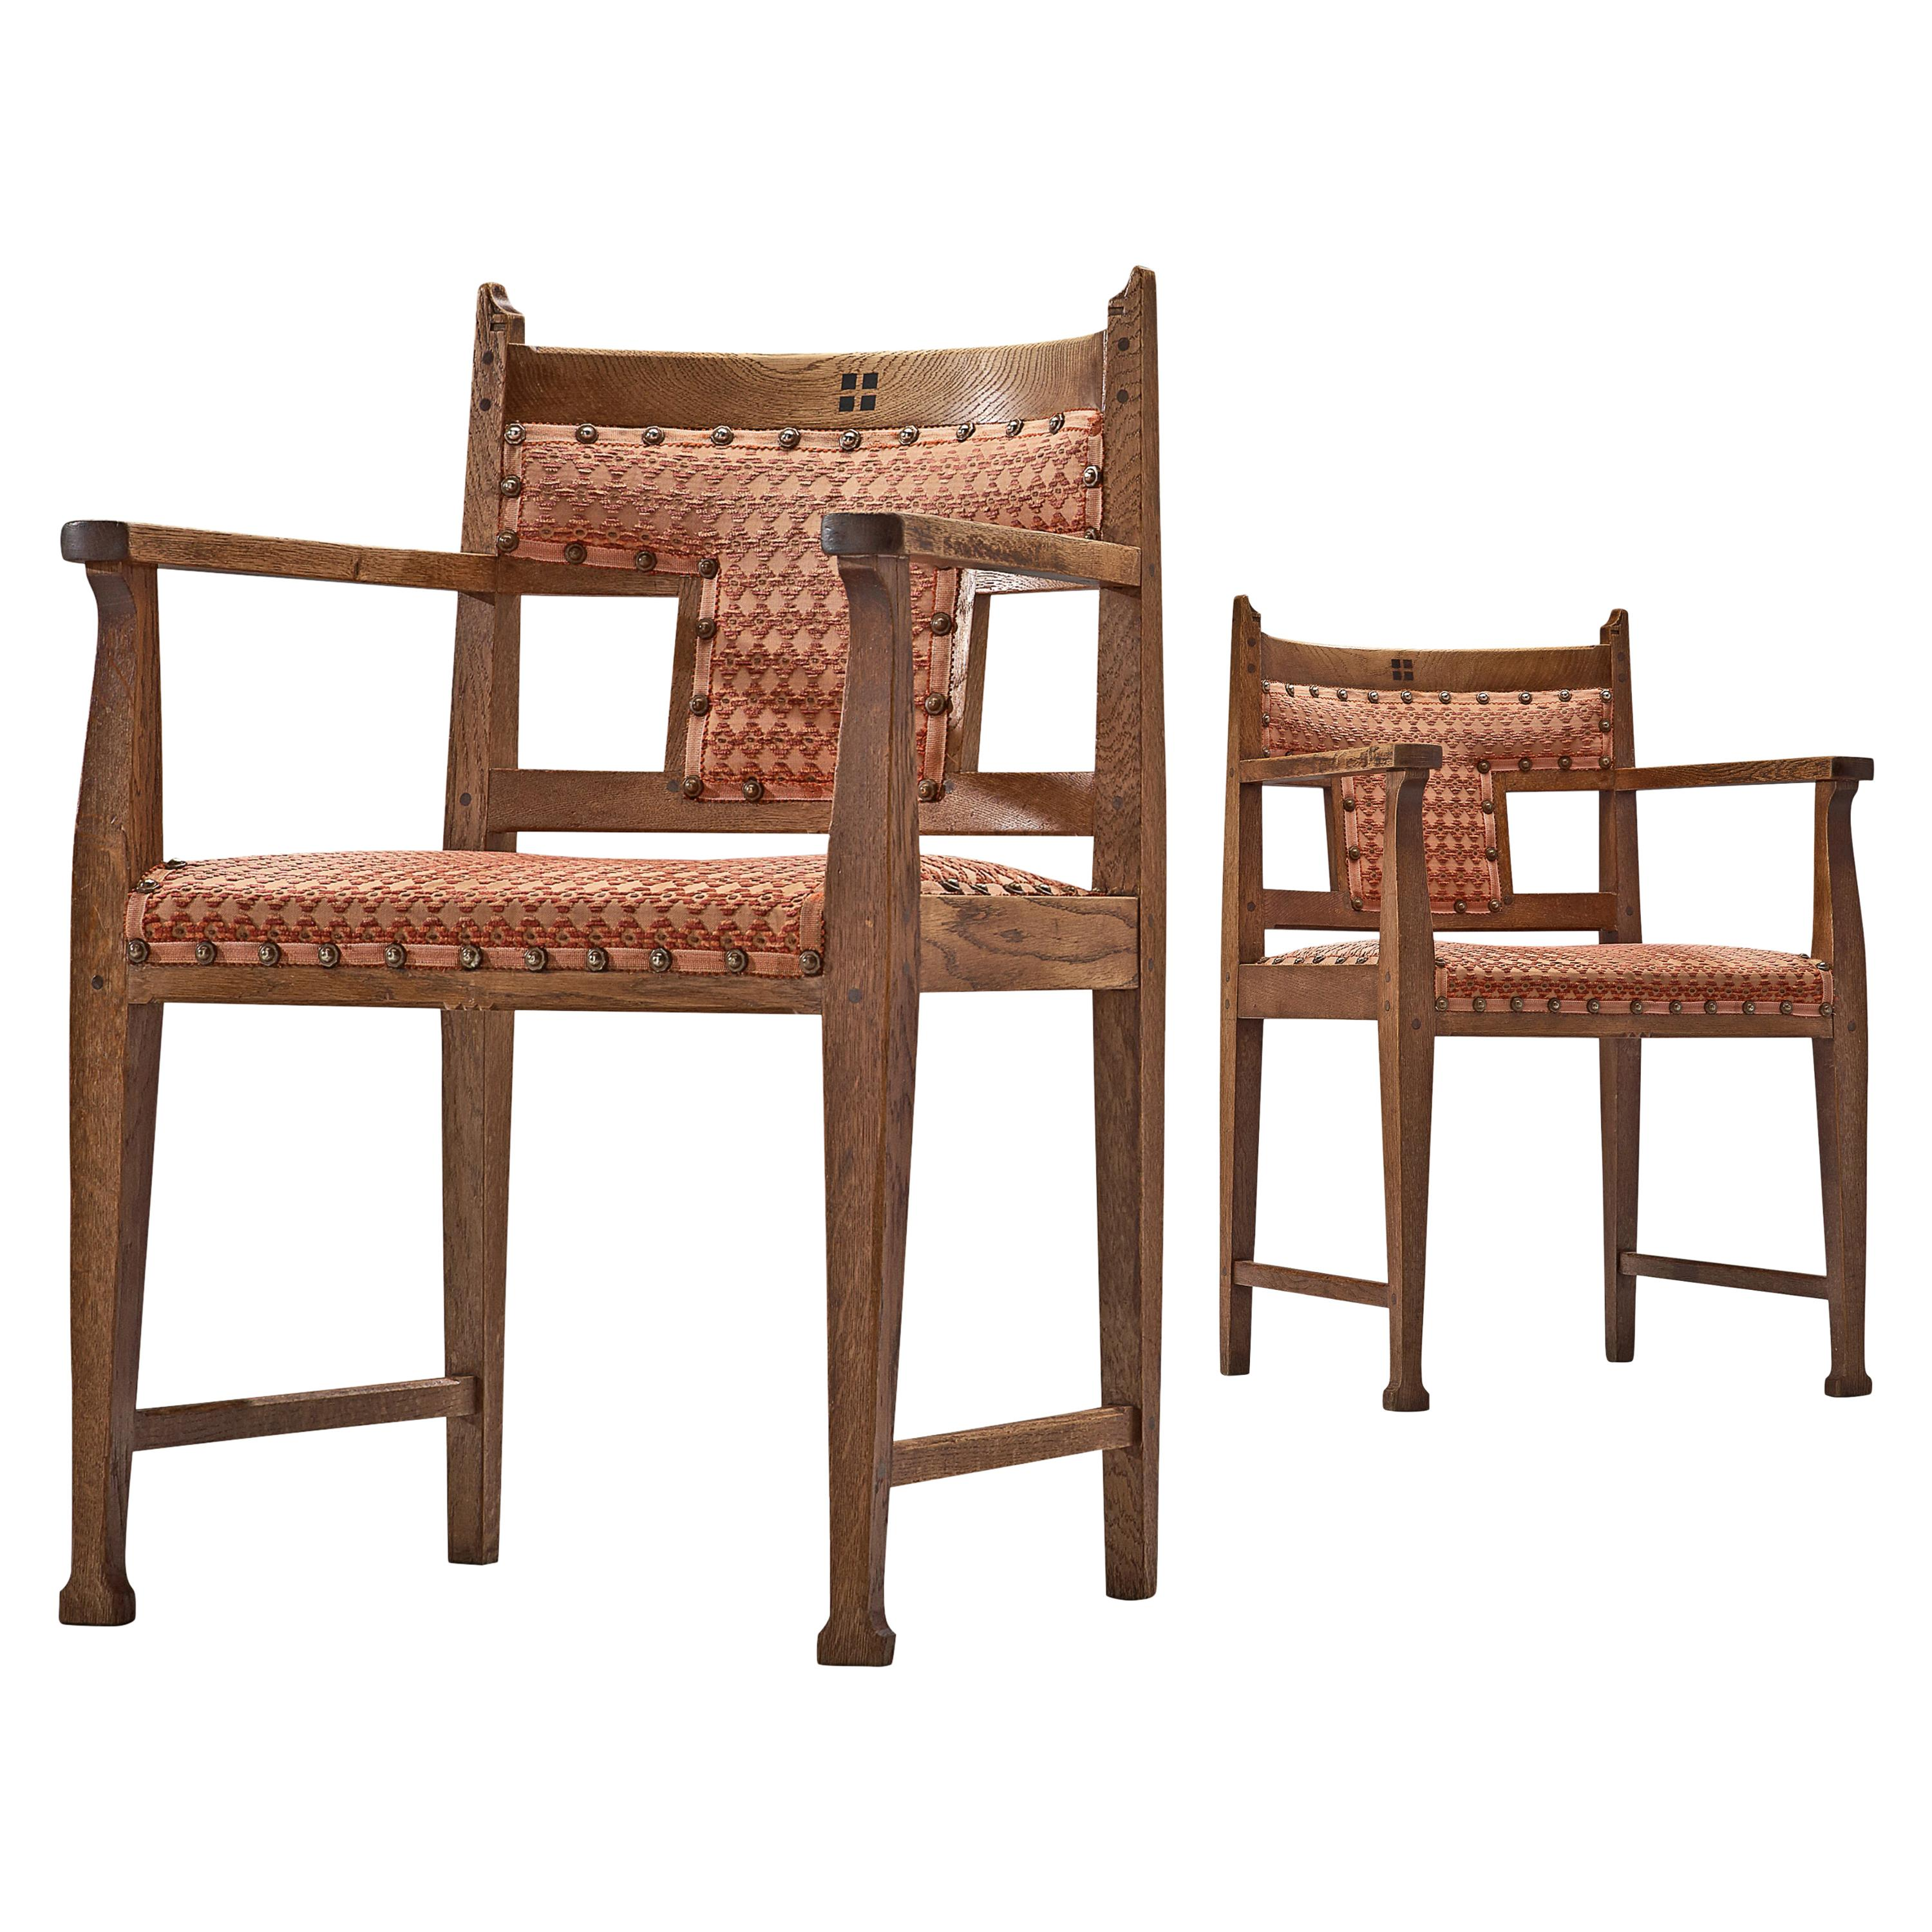 Pair of Dutch Art Deco Armchairs in Oak Fabric Upholstery